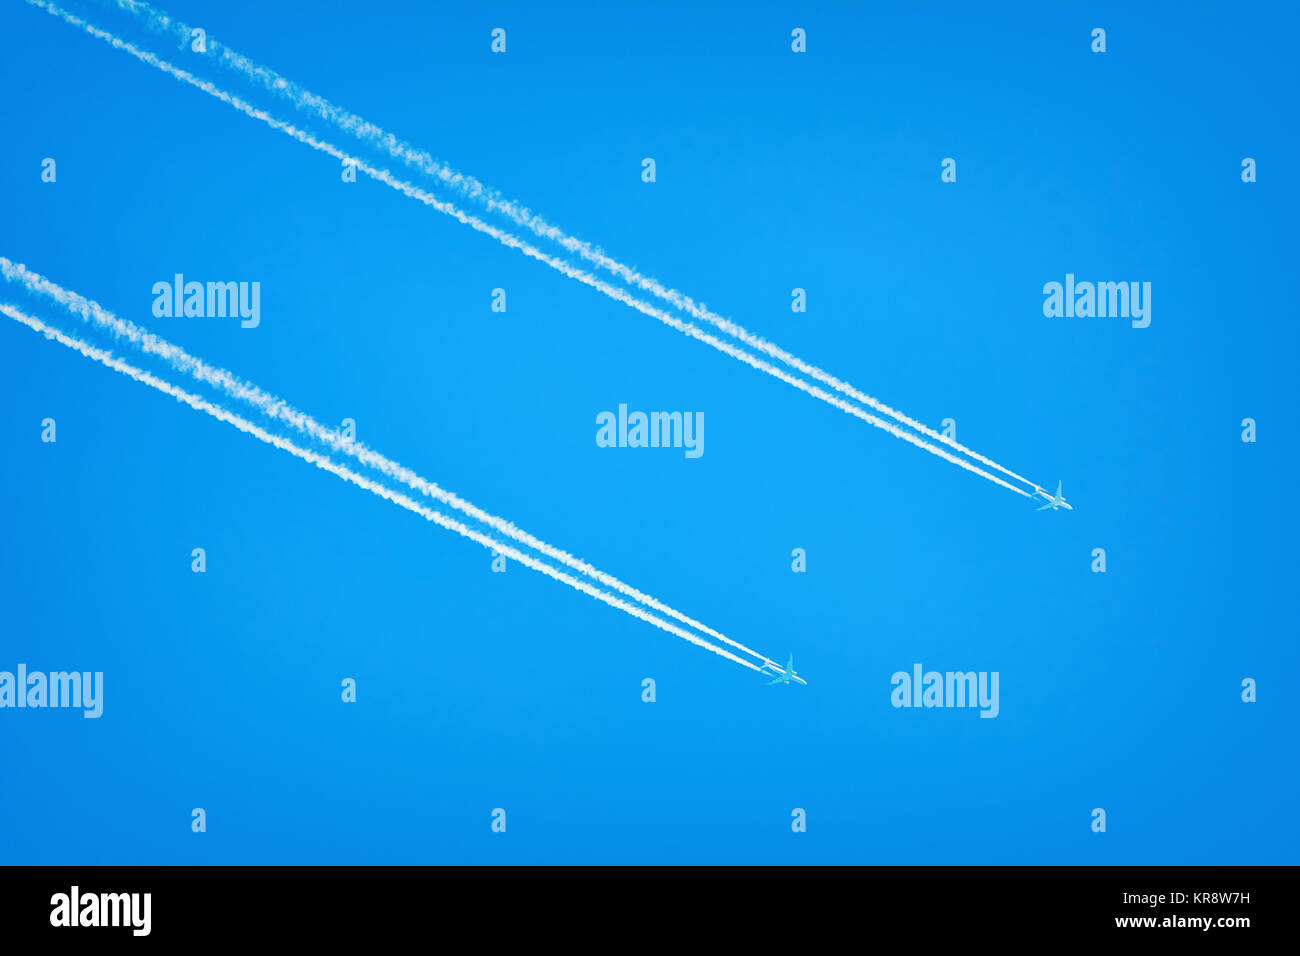 Two Airplanes in the Sky - Stock Image